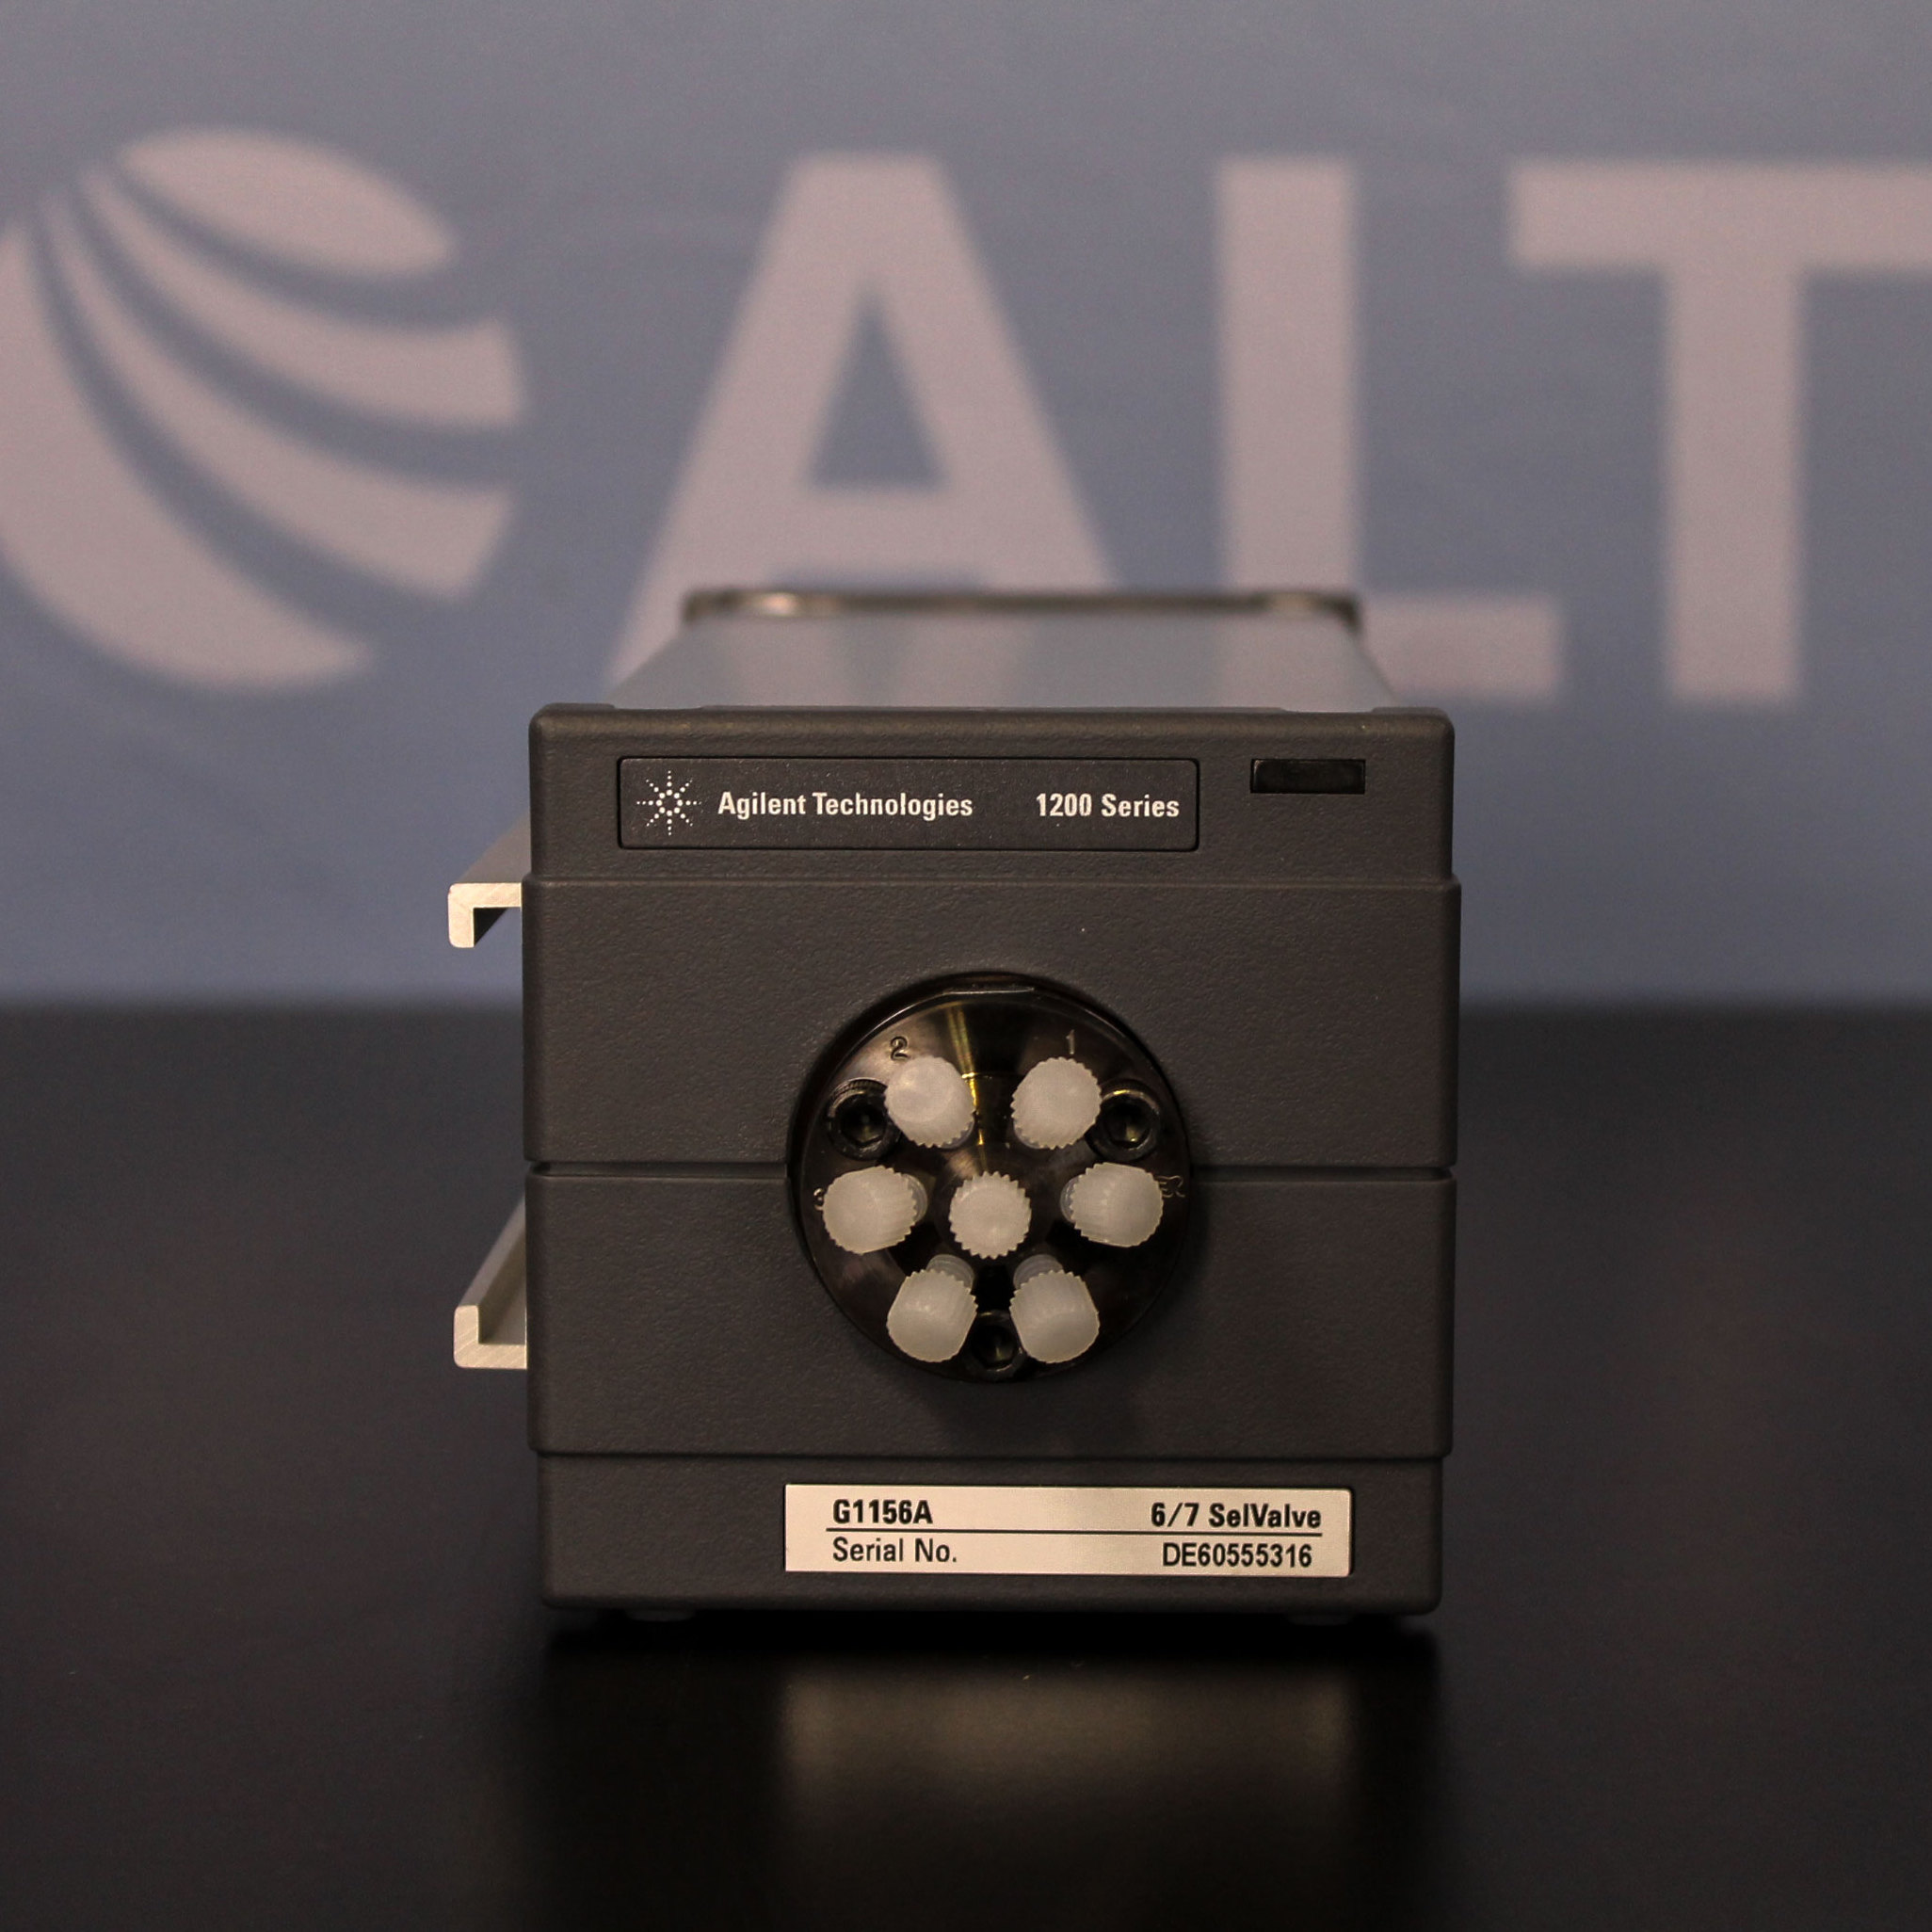 Agilent Technologies G1156A 6 Position / 7 Port Selection Valve  Image